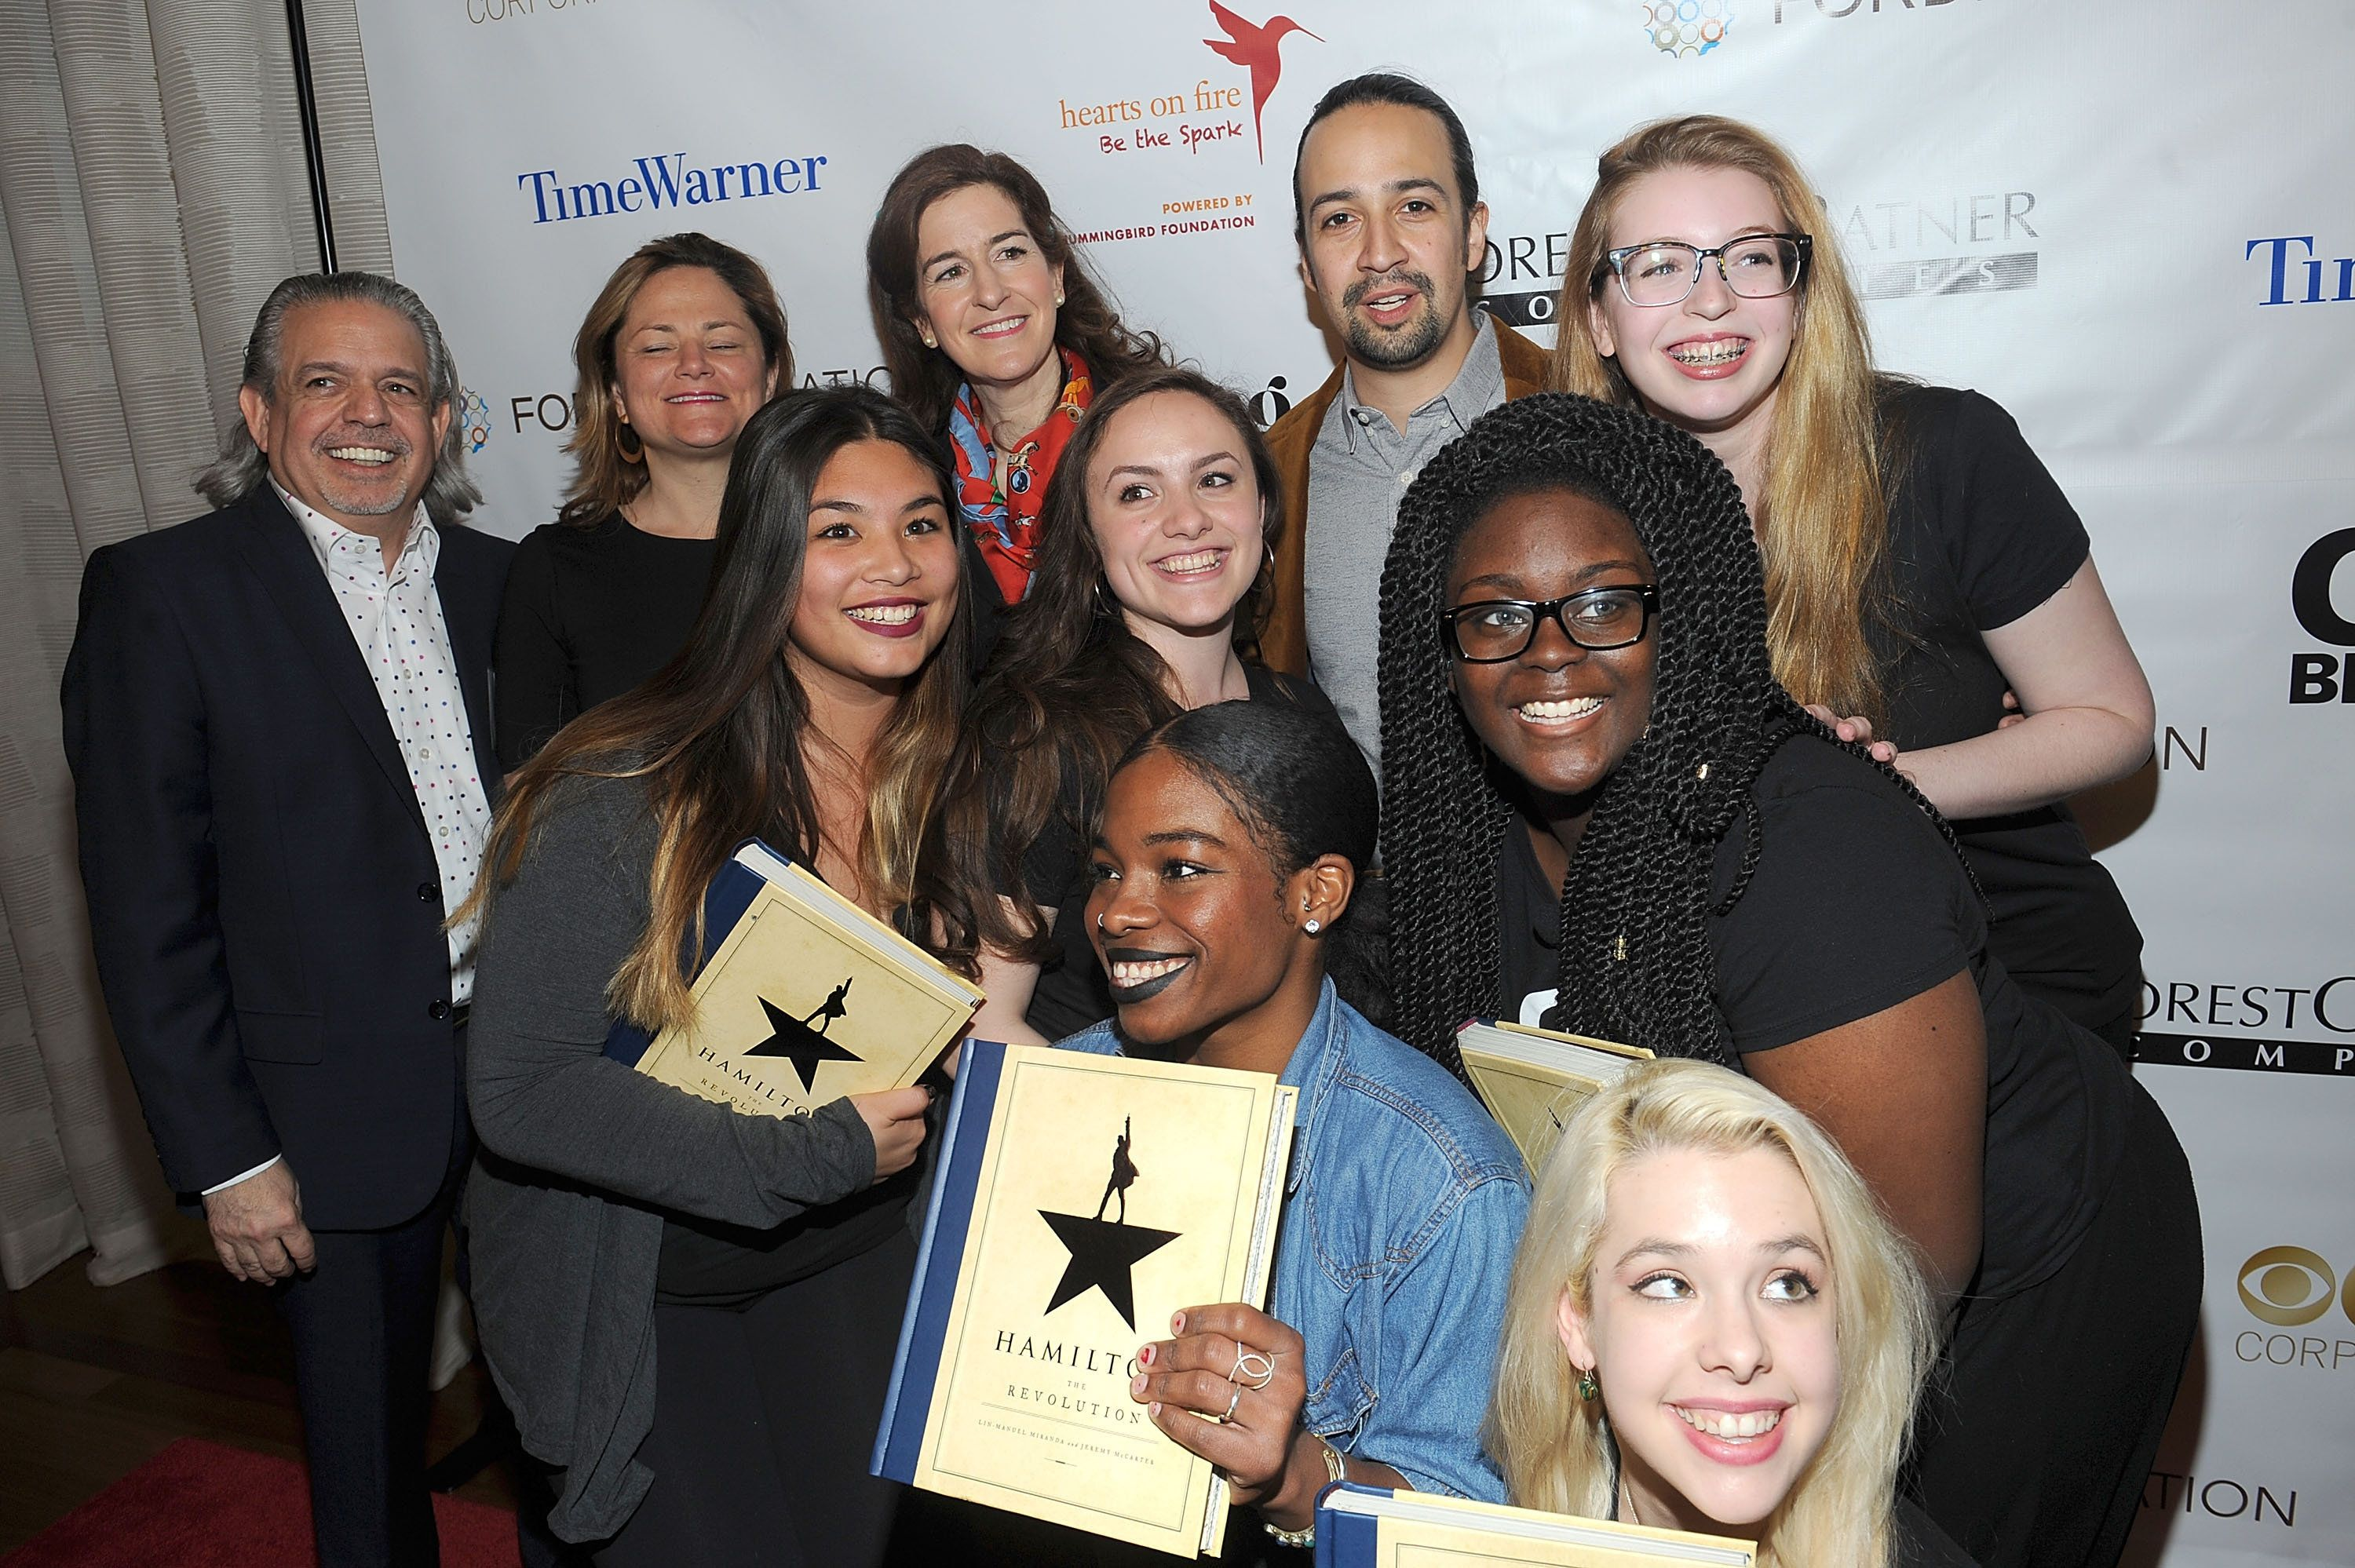 Lin-Manuel Miranda with Girl Be Heard co-founder and Executive Director Jessica Greer Morris, and the young women who pe